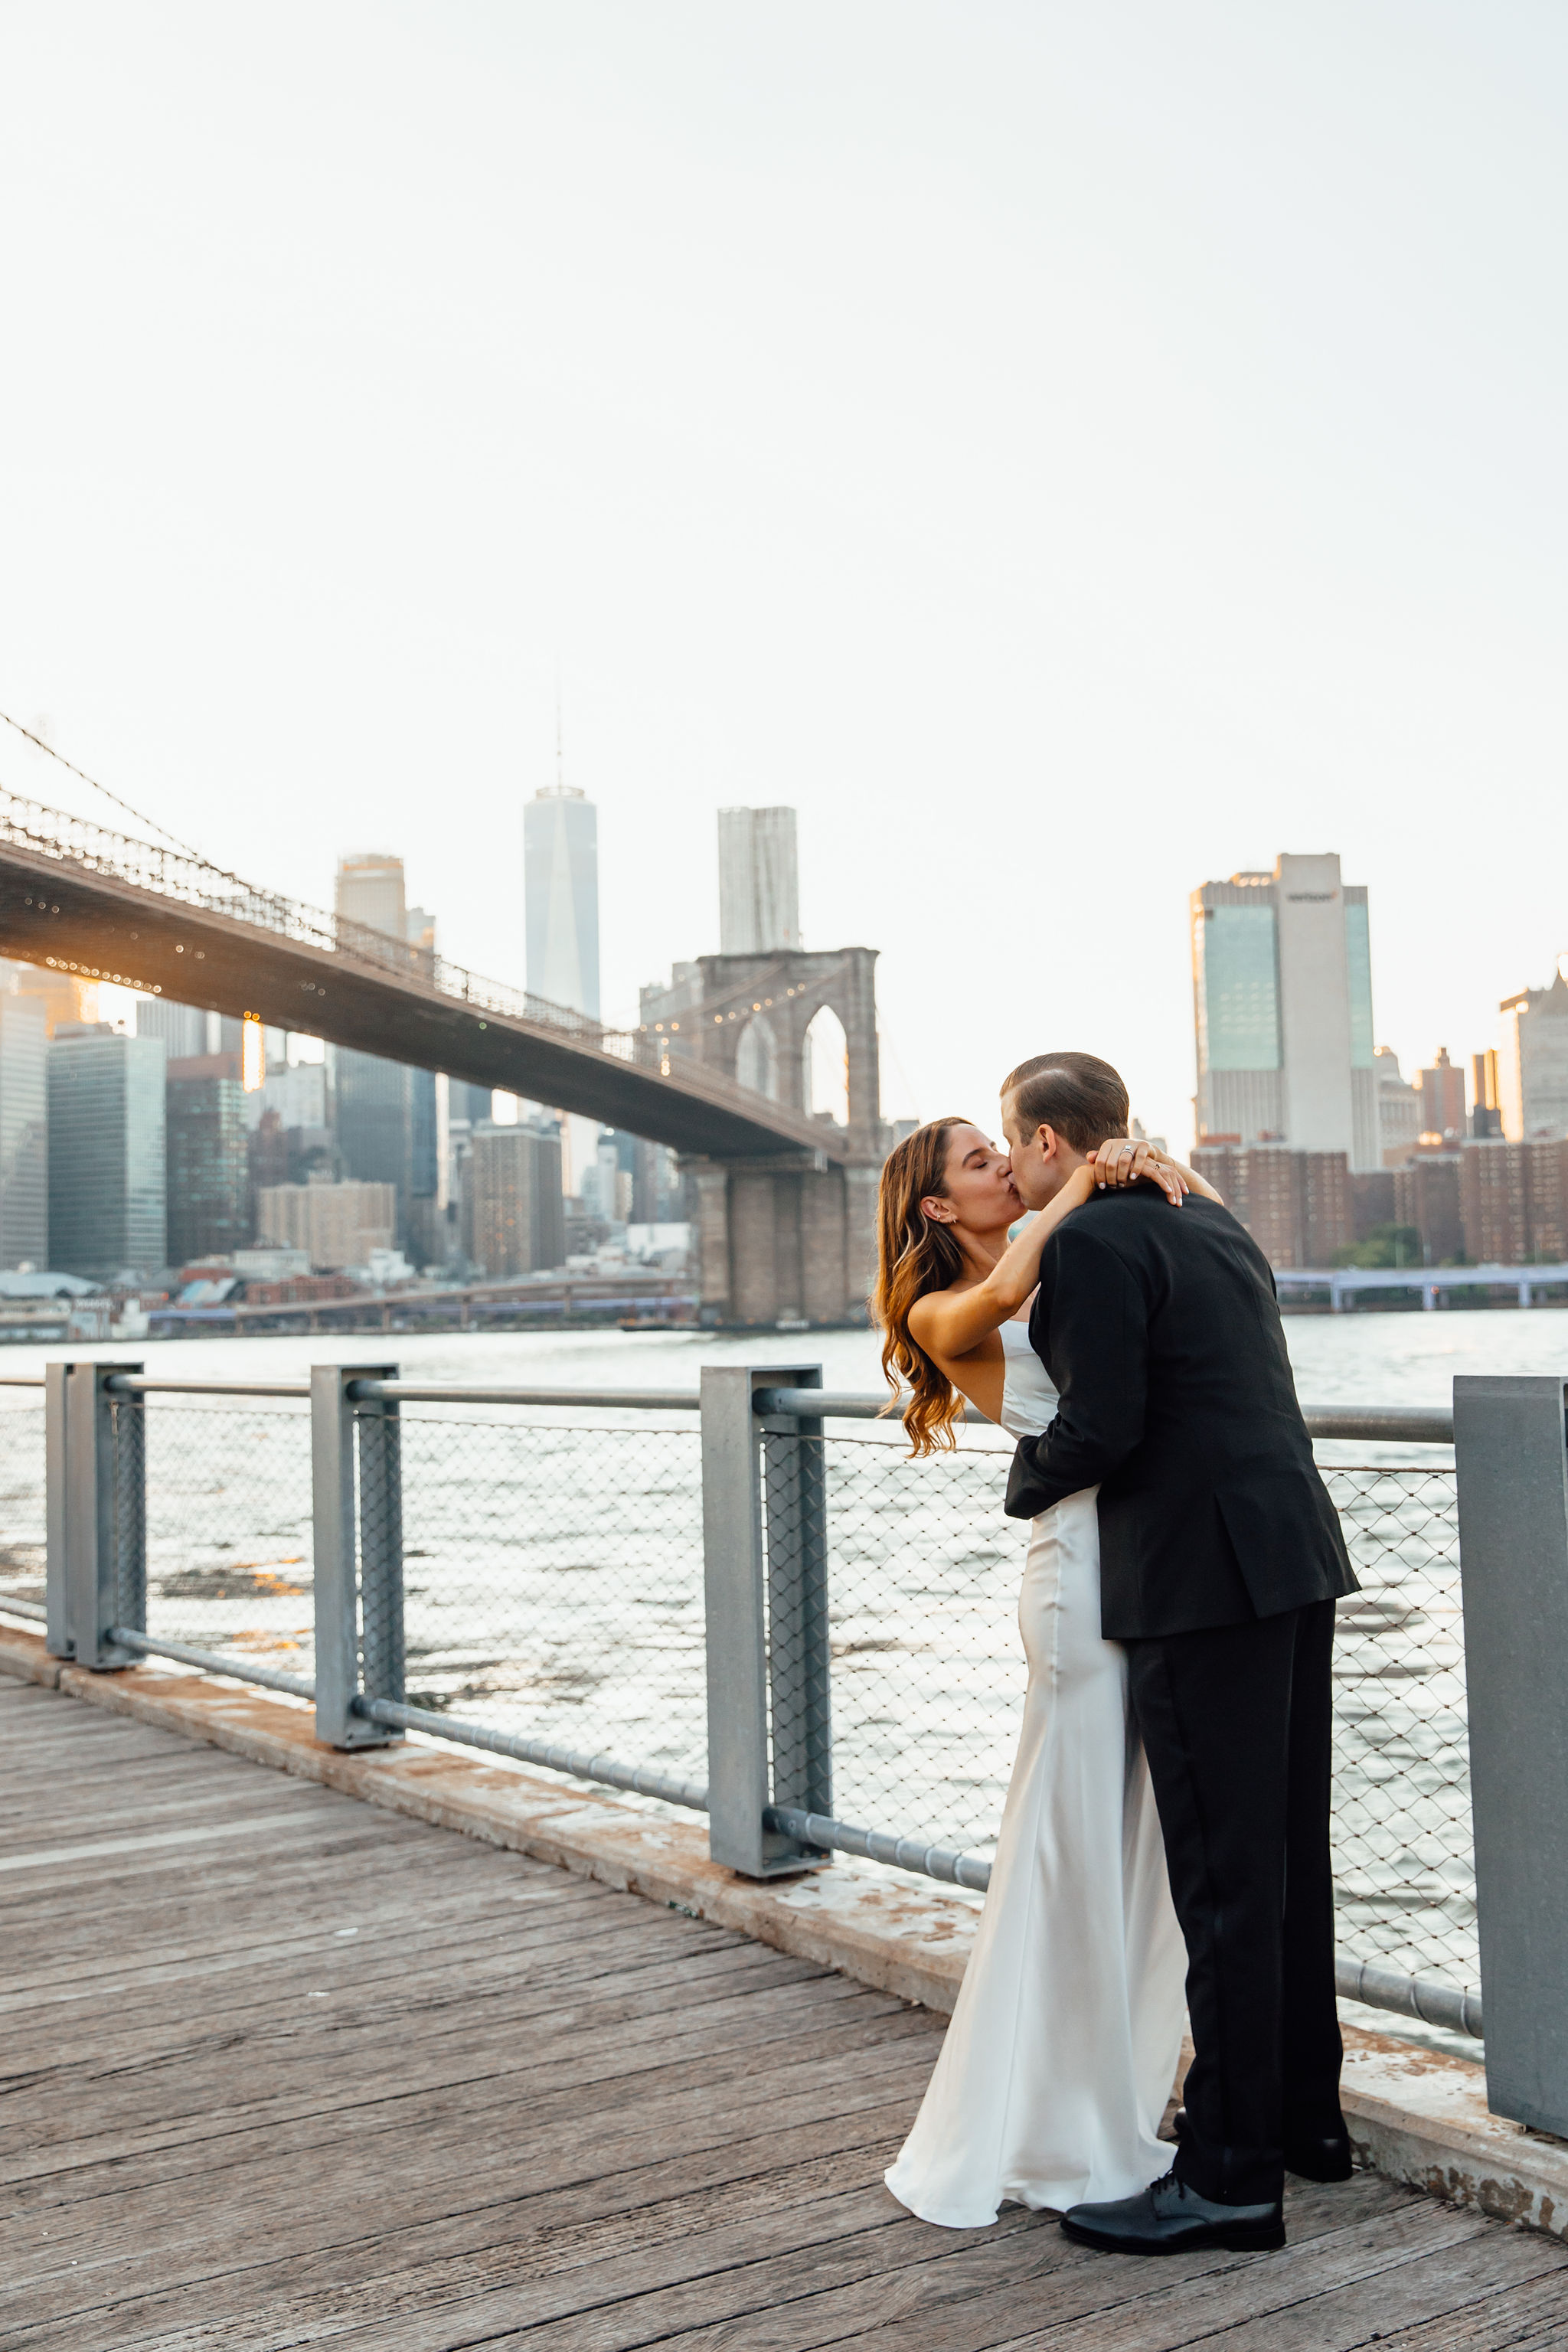 Bride and groom kissing with the Brooklyn Bridge views